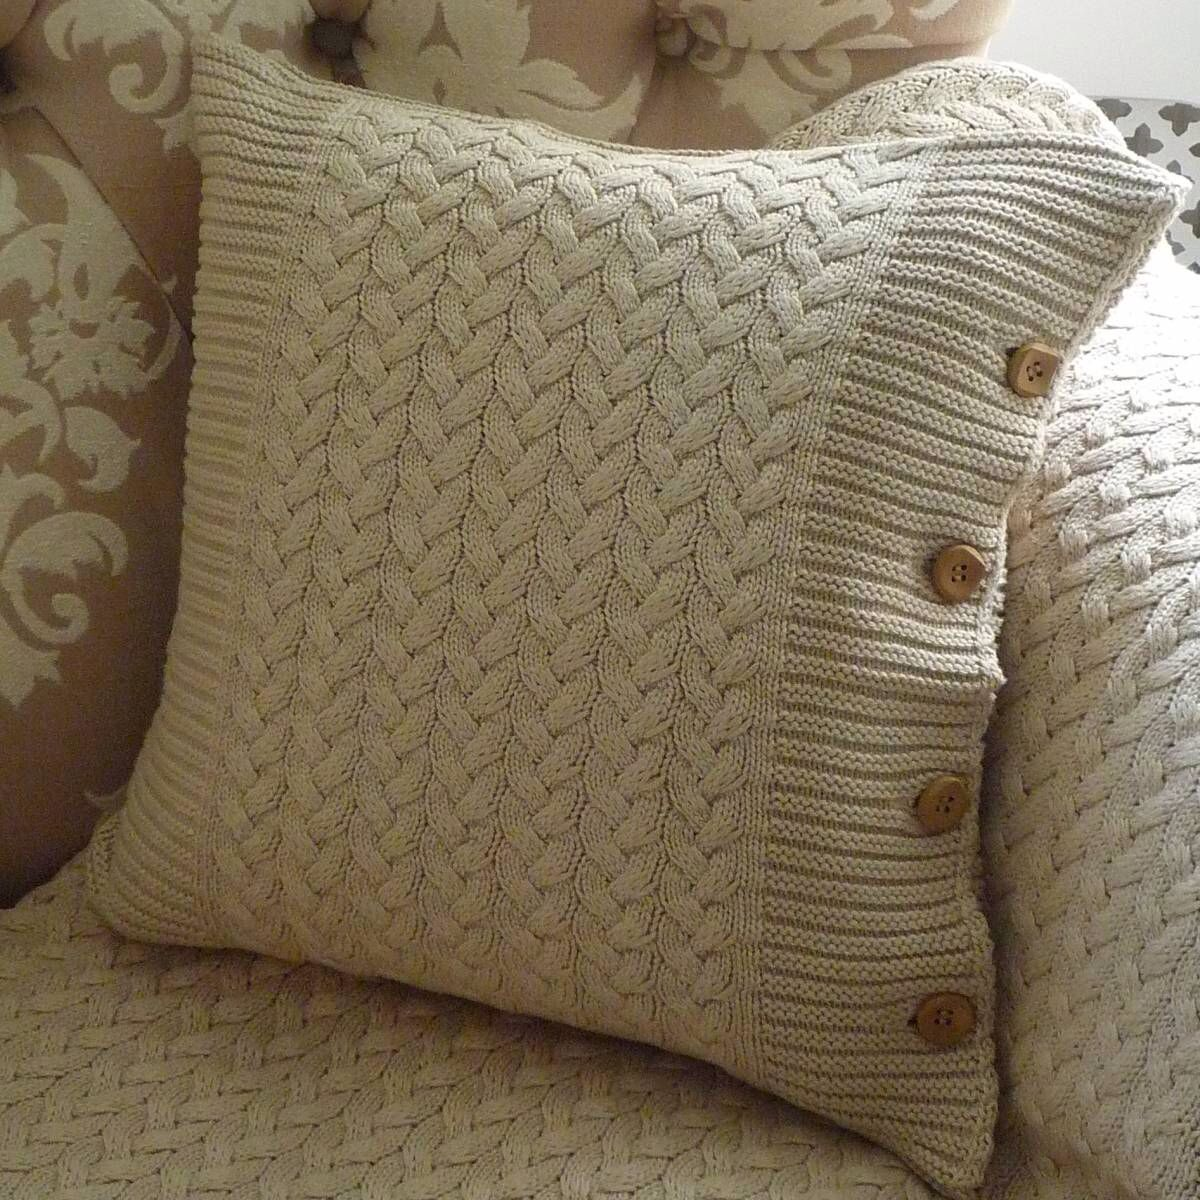 Knit pillows Knitting/crochet patterns Pinterest